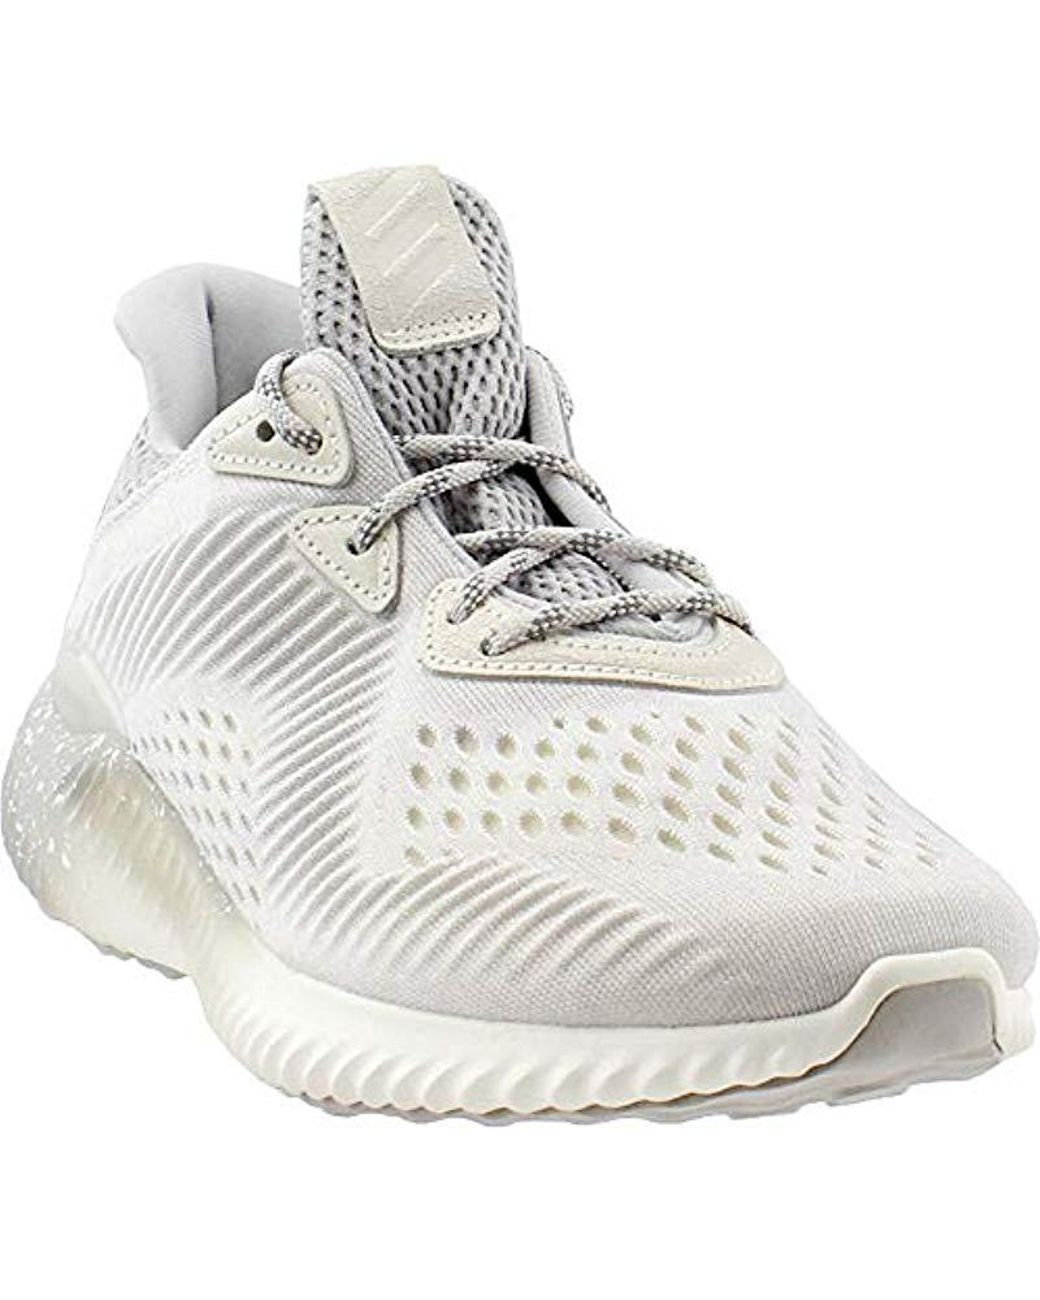 new product 99c44 eb726 Men's White Alphabounce 1 Reigning Champ M Running Shoe